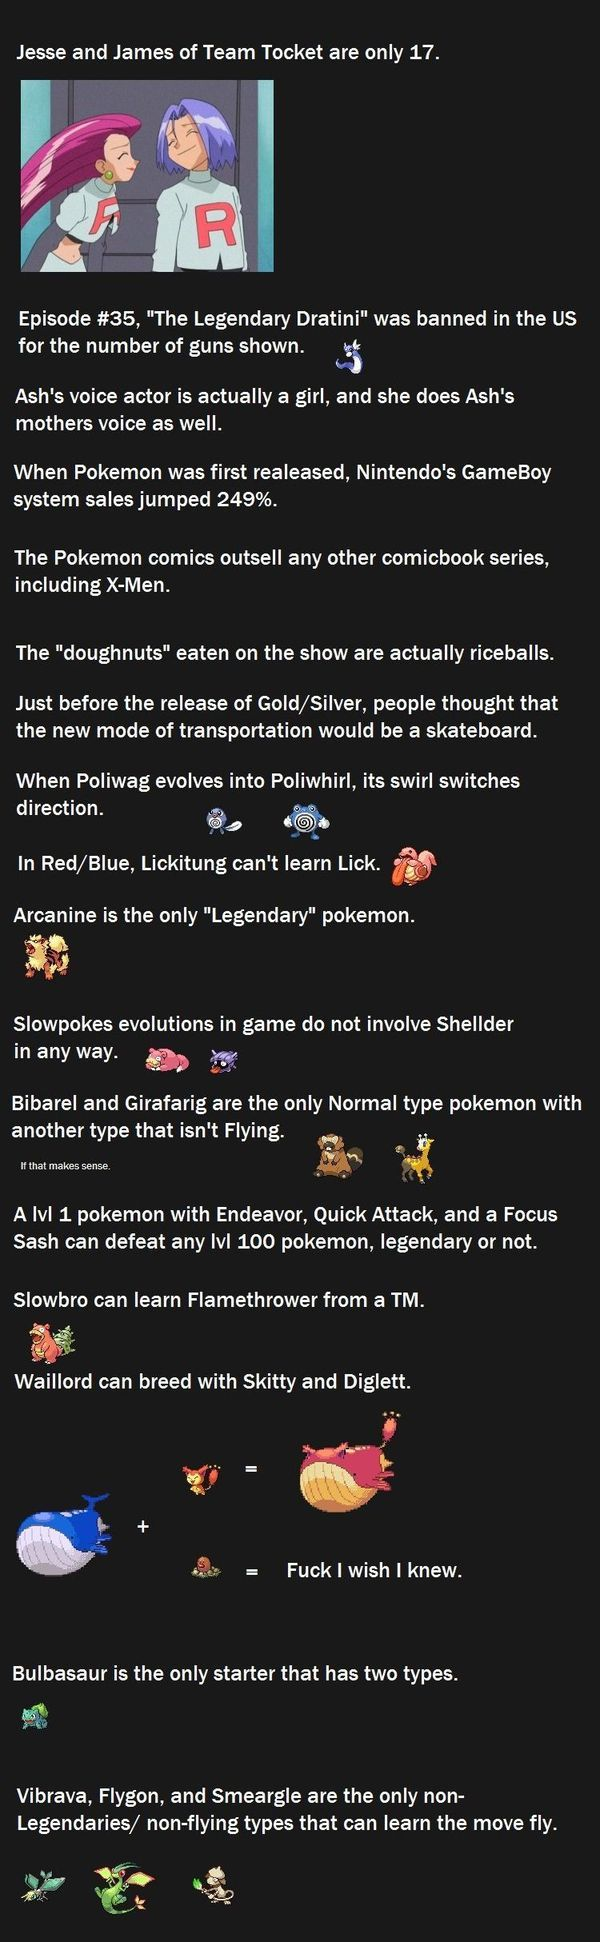 Funny Pokemon Facts 4